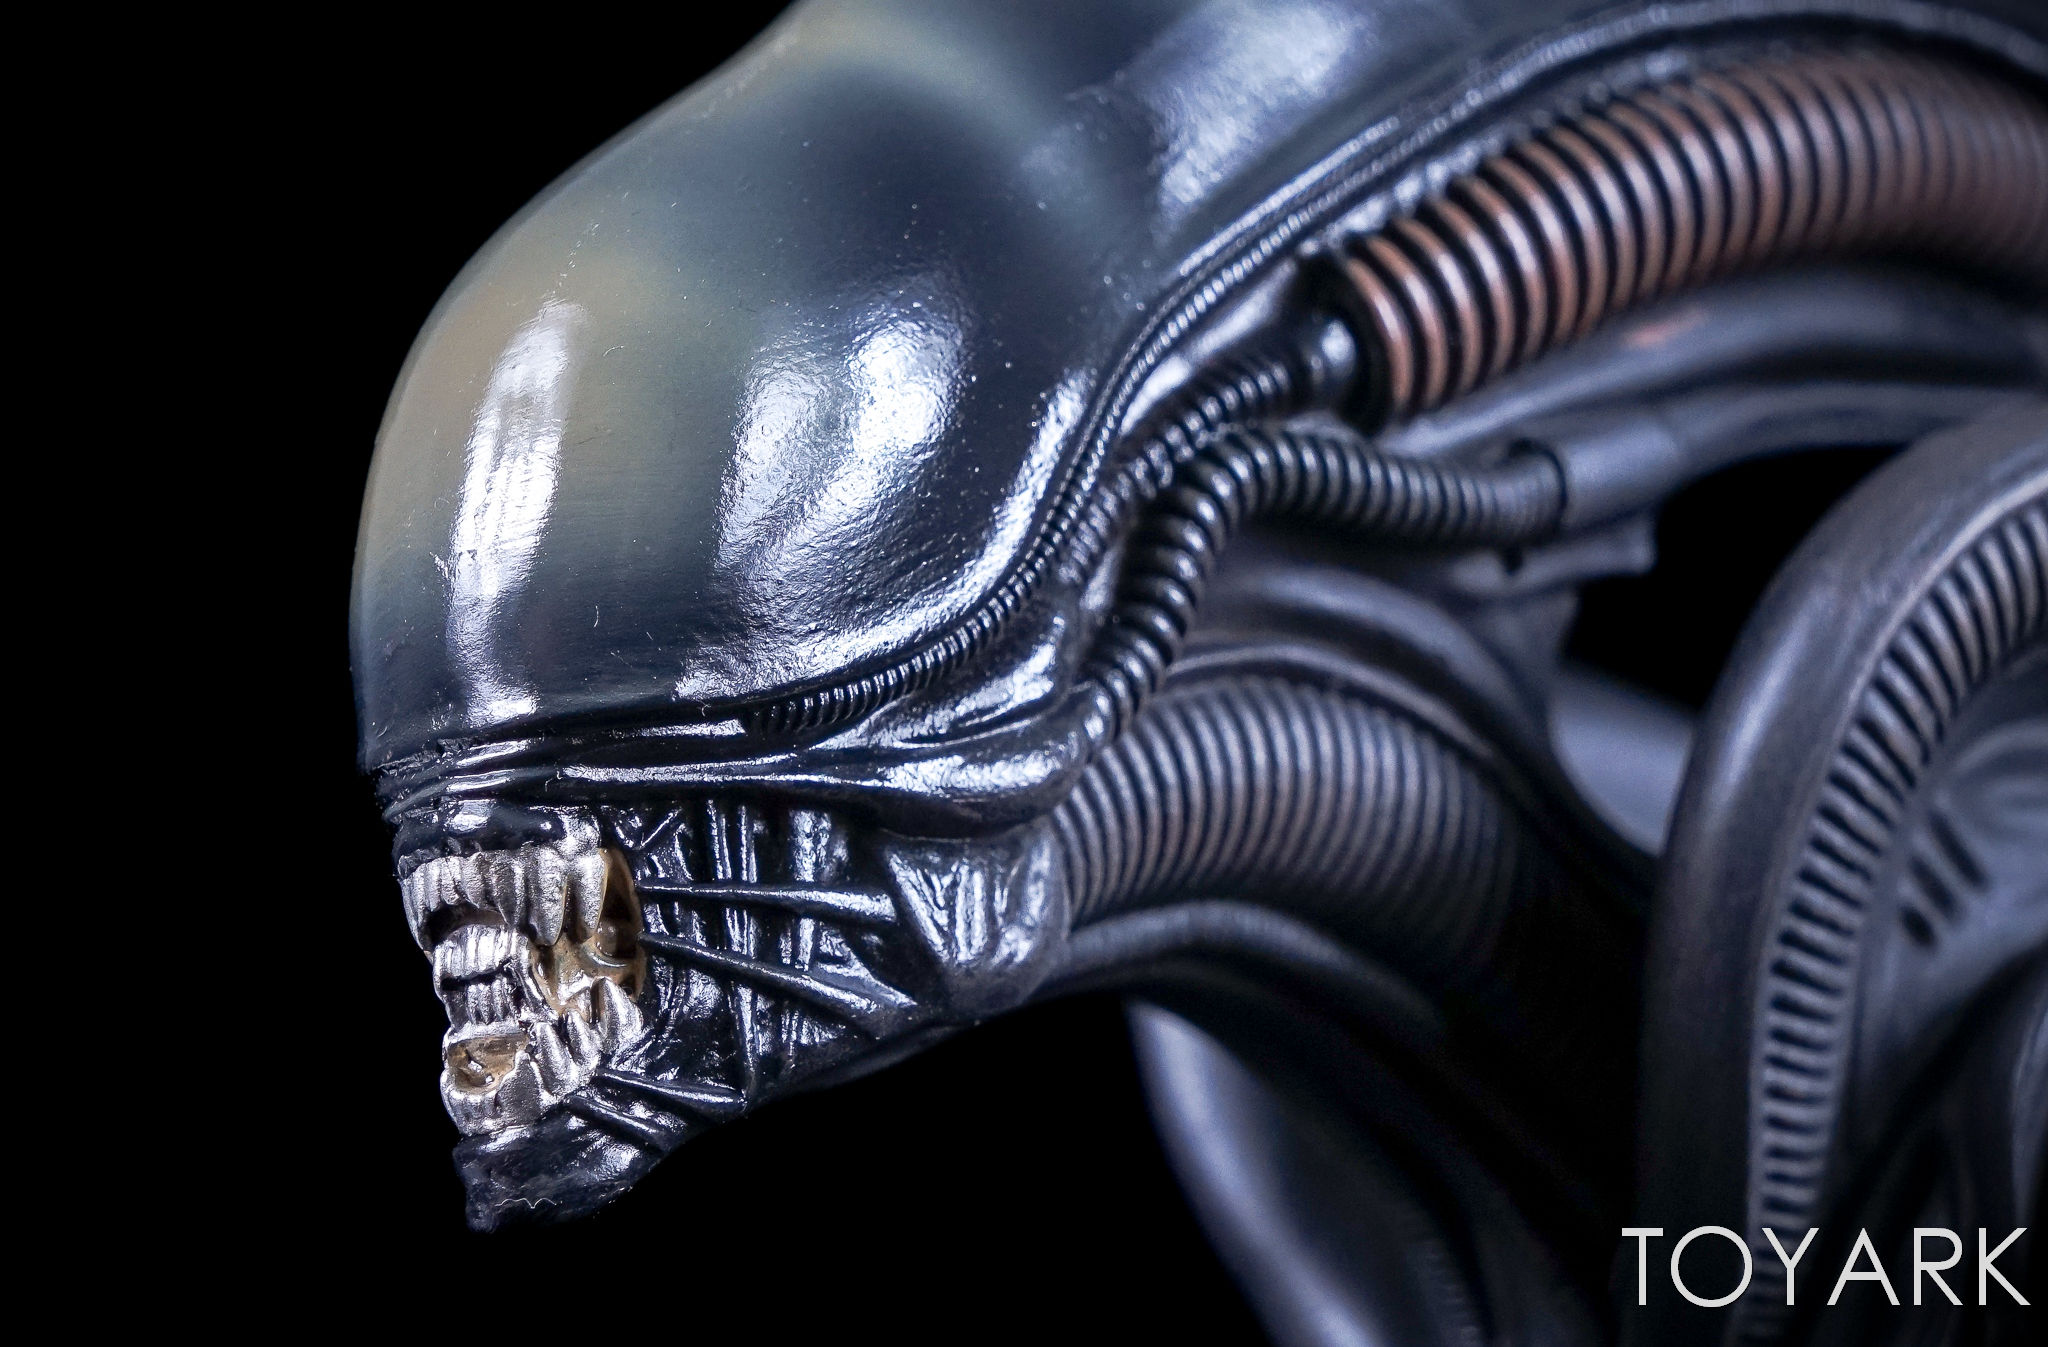 http://news.toyark.com/wp-content/uploads/sites/4/2017/05/Hero-Collector-Mega-Alien-Statue-027.jpg